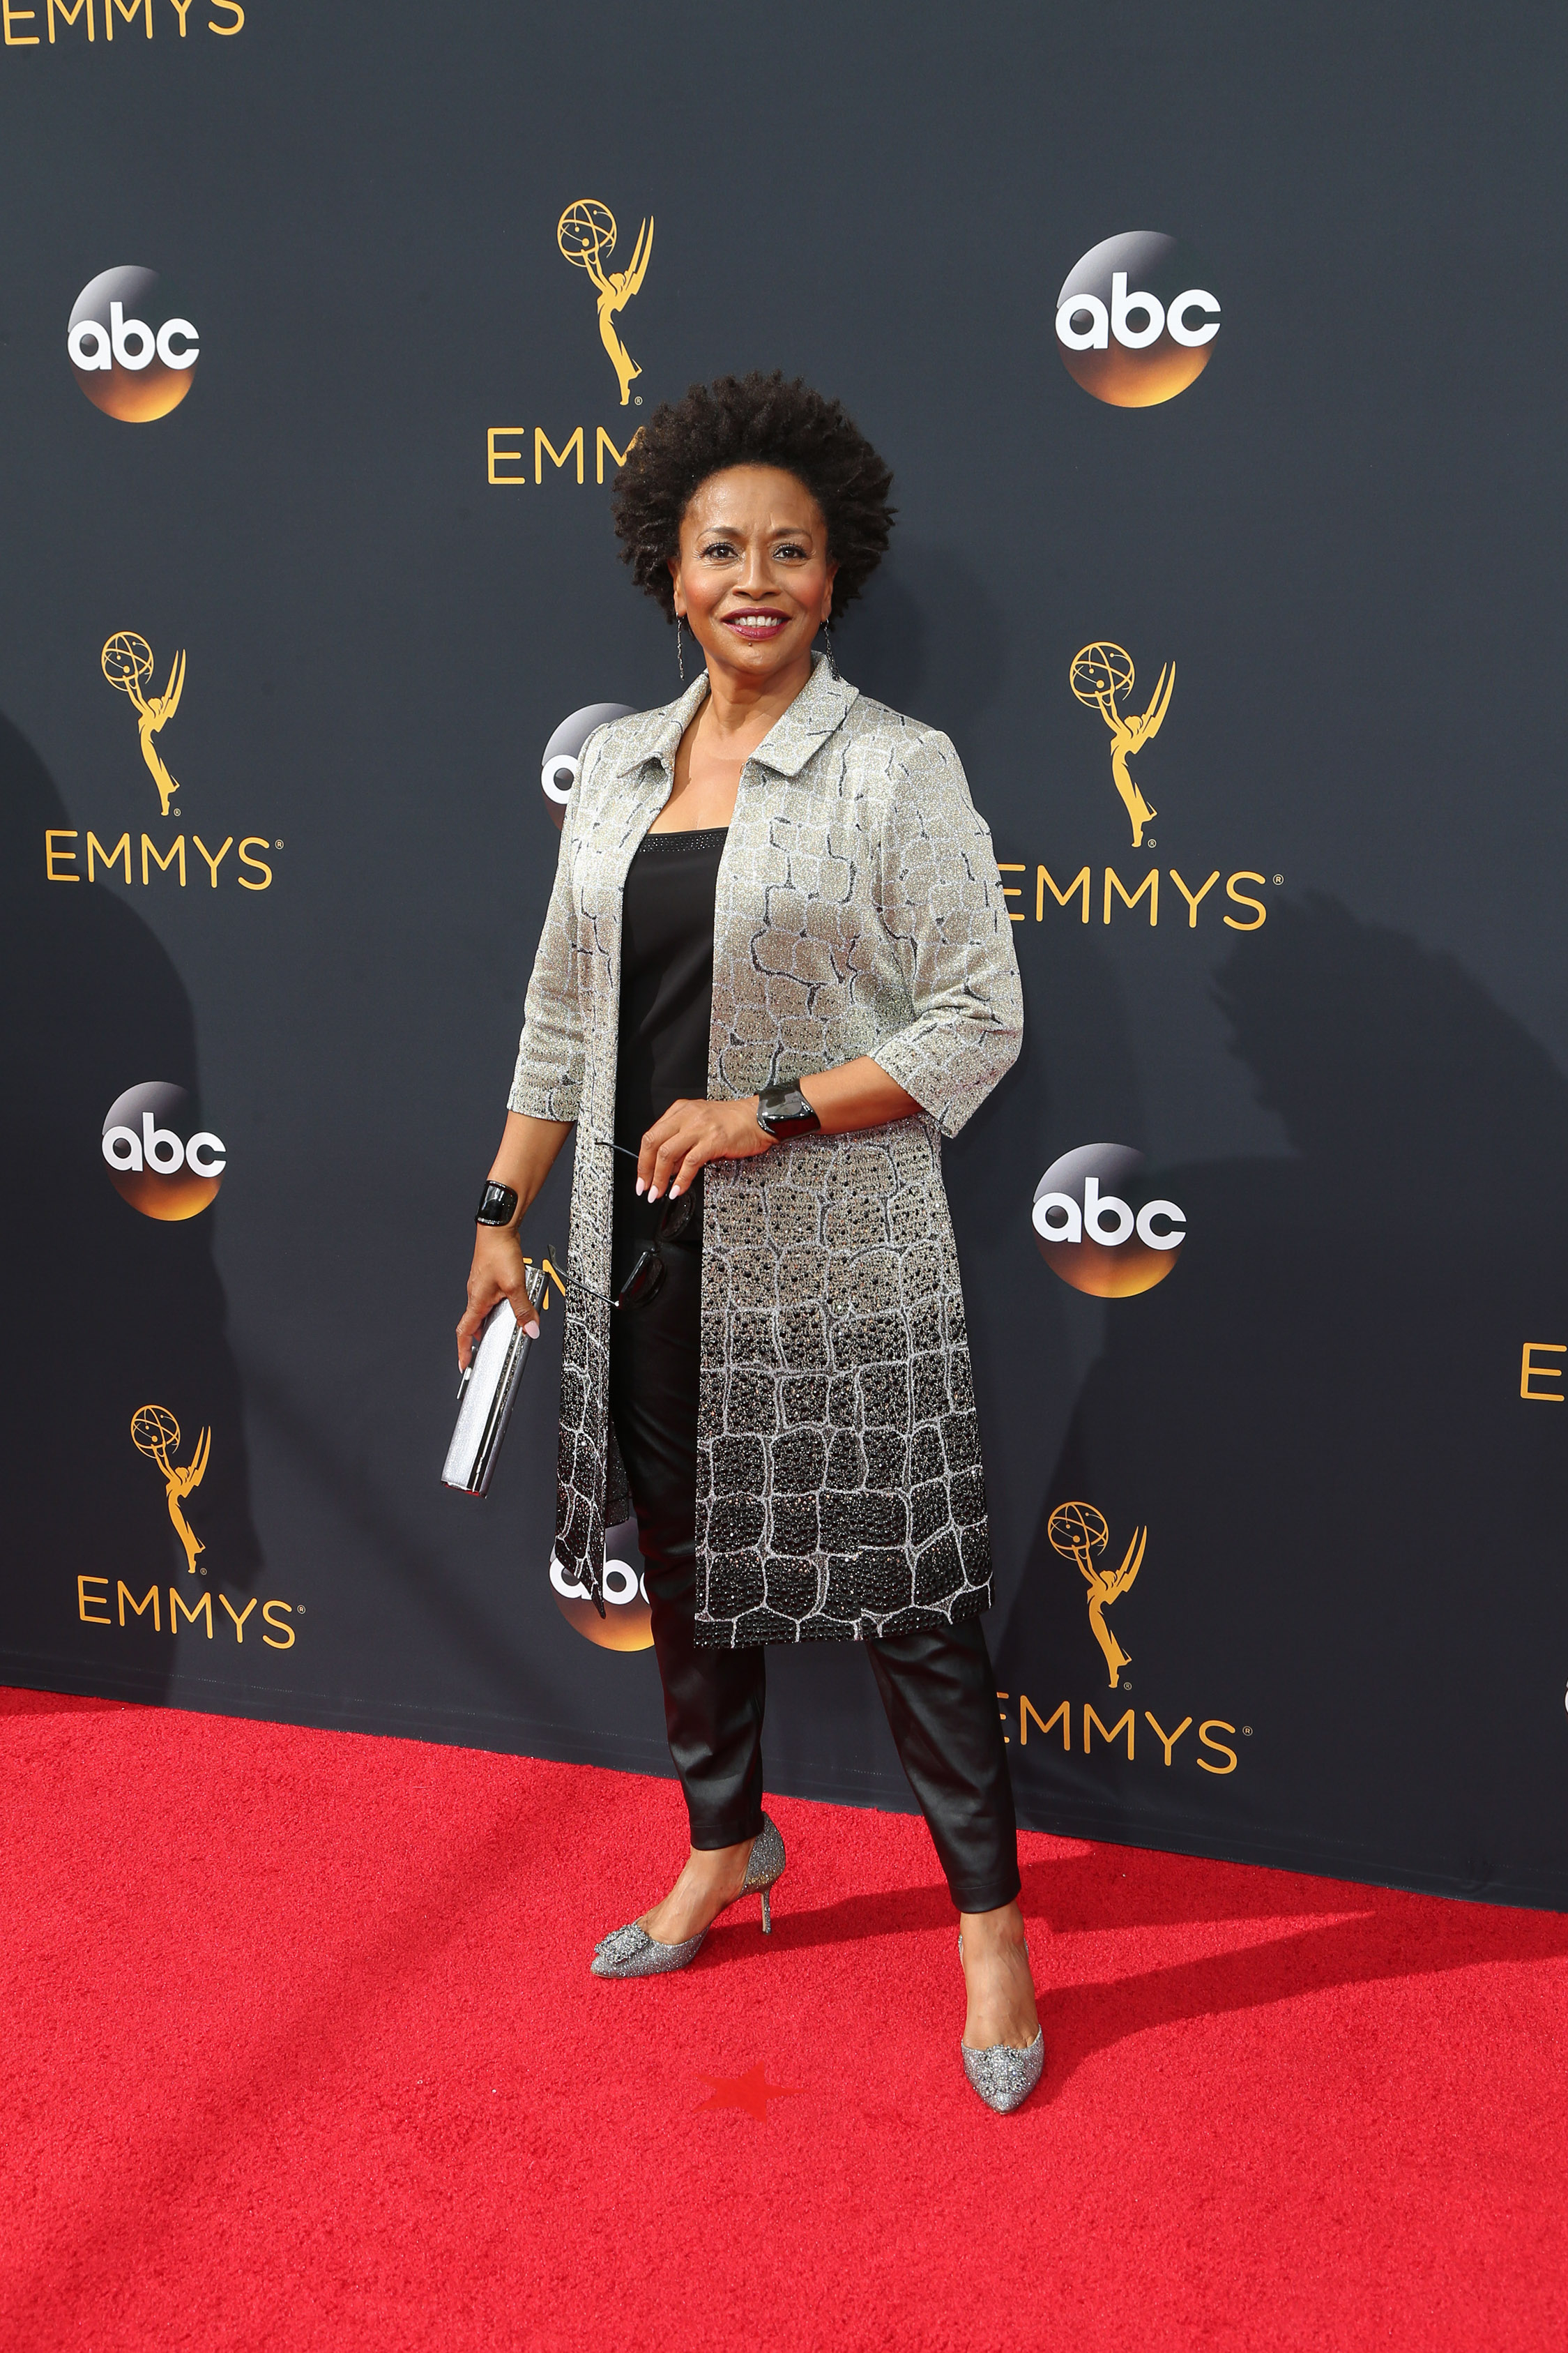 09/18/2016 - Jenifer Lewis - 68th Annual Primetime Emmy Awards - Arrivals - Microsoft Theater, 777 Chick Hearn Court - Los Angeles, CA, USA - Keywords: Vertical, Celebrity, Celebrities, People, Person, Television Show, Photography, Portrait, Annual Event, Emmys, Arts Culture and Entertainment, Arriving, Attending, 2016 Primetime Emmy Awards, 68th Primetime Emmy Awards, Film Industry, Award Show, Portrait, Photography, Arts Culture and Entertainment, Appearance, Red Carpet Event, Topix, Bestof, California Orientation: Portrait Face Count: 1 - False - Photo Credit: PRPhotos.com - Contact (1-866-551-7827) - Portrait Face Count: 1